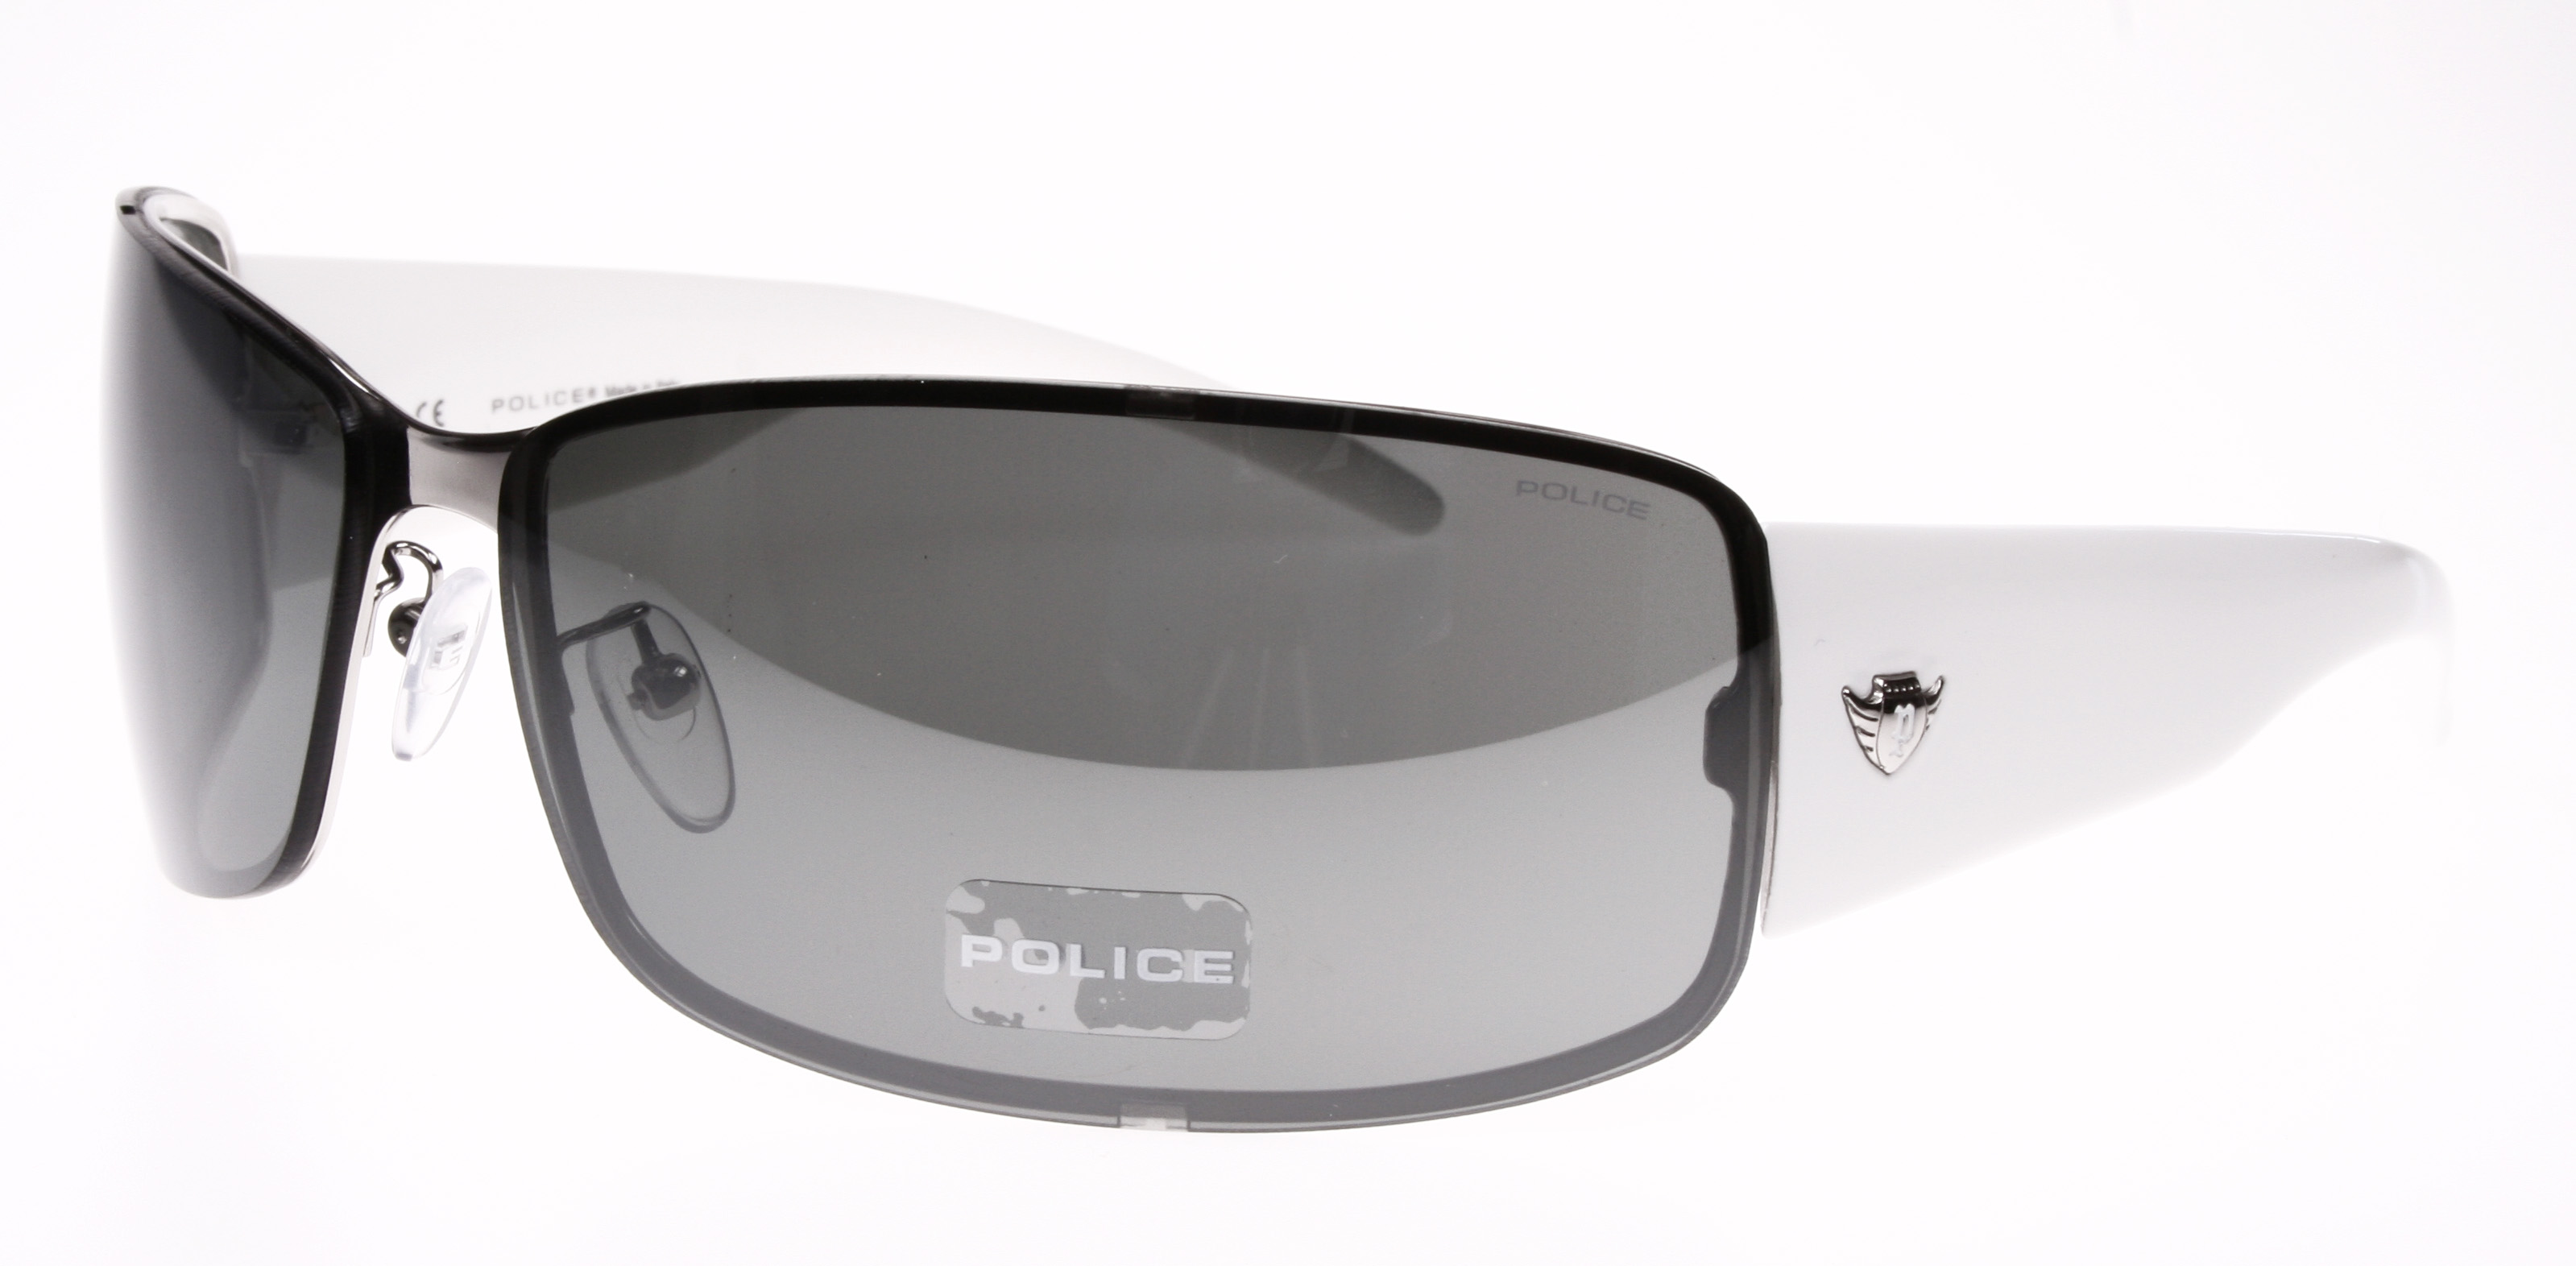 8a37778515 AUTHENTIC NEW 8413 M POLICE SUNGLASSES S8413 579X WHITE